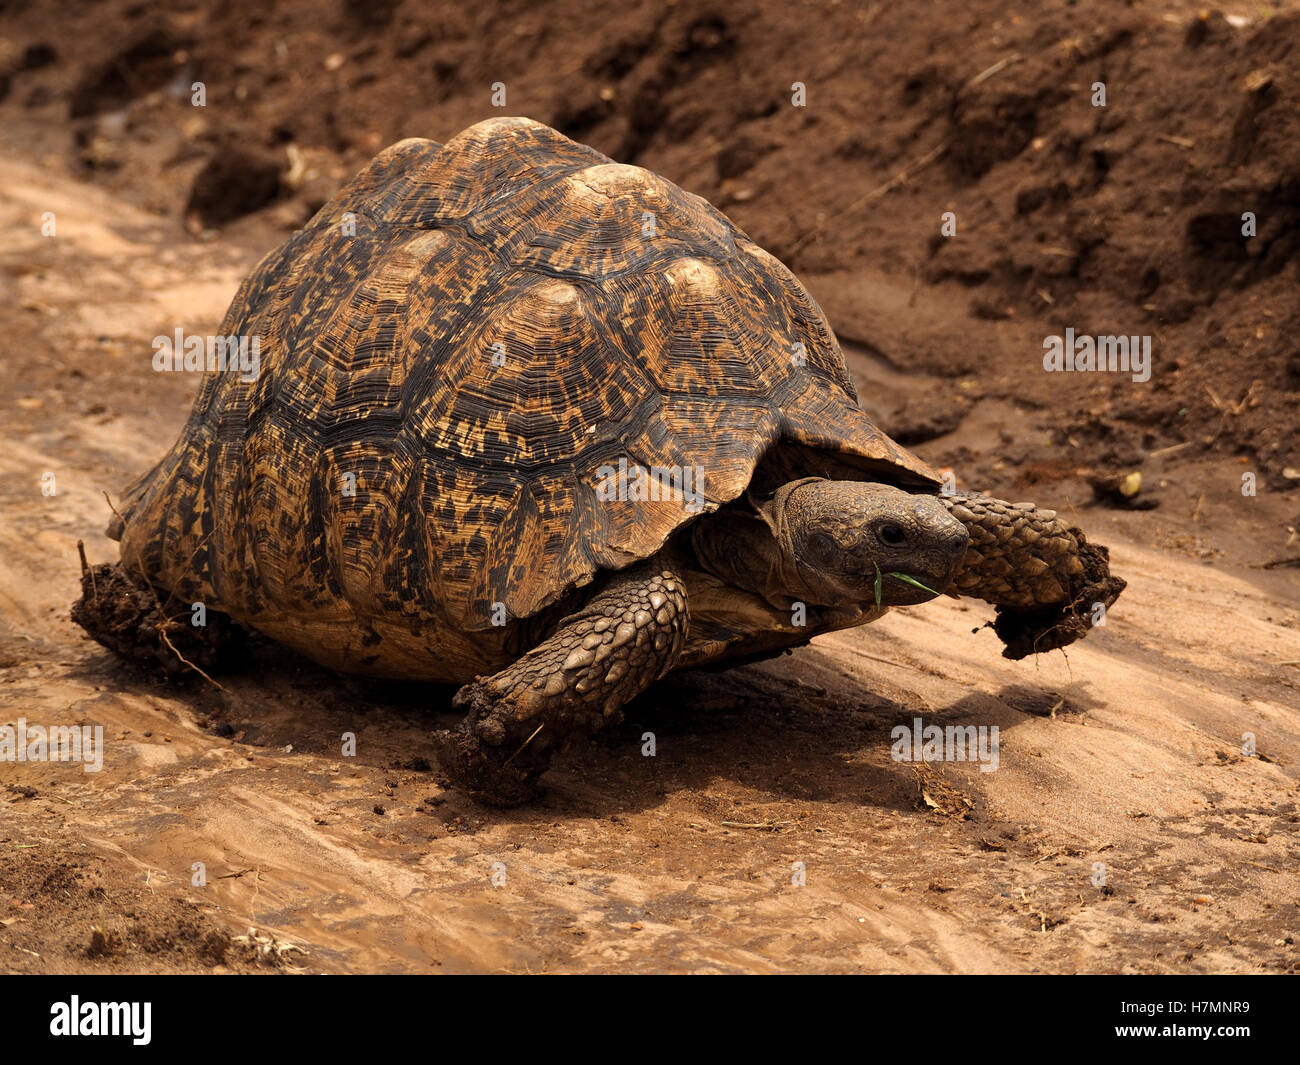 Leopard tortoise (Stigmochelys pardalis) marching in riverbed Laikipia district Kenya Africa with compacted mud - Stock Image